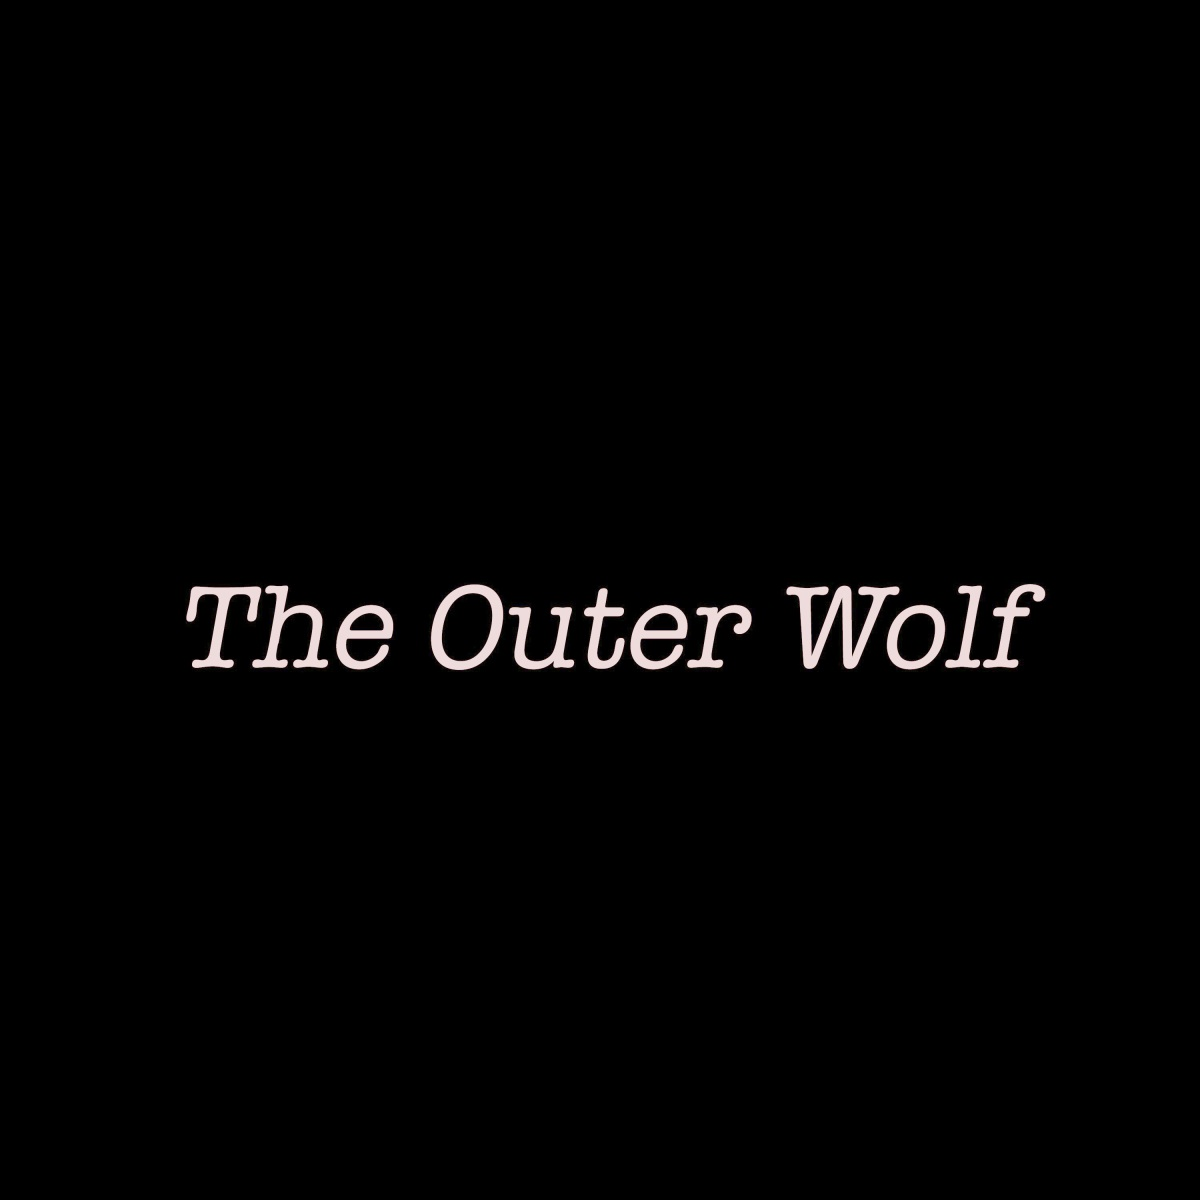 The Outer Wolf